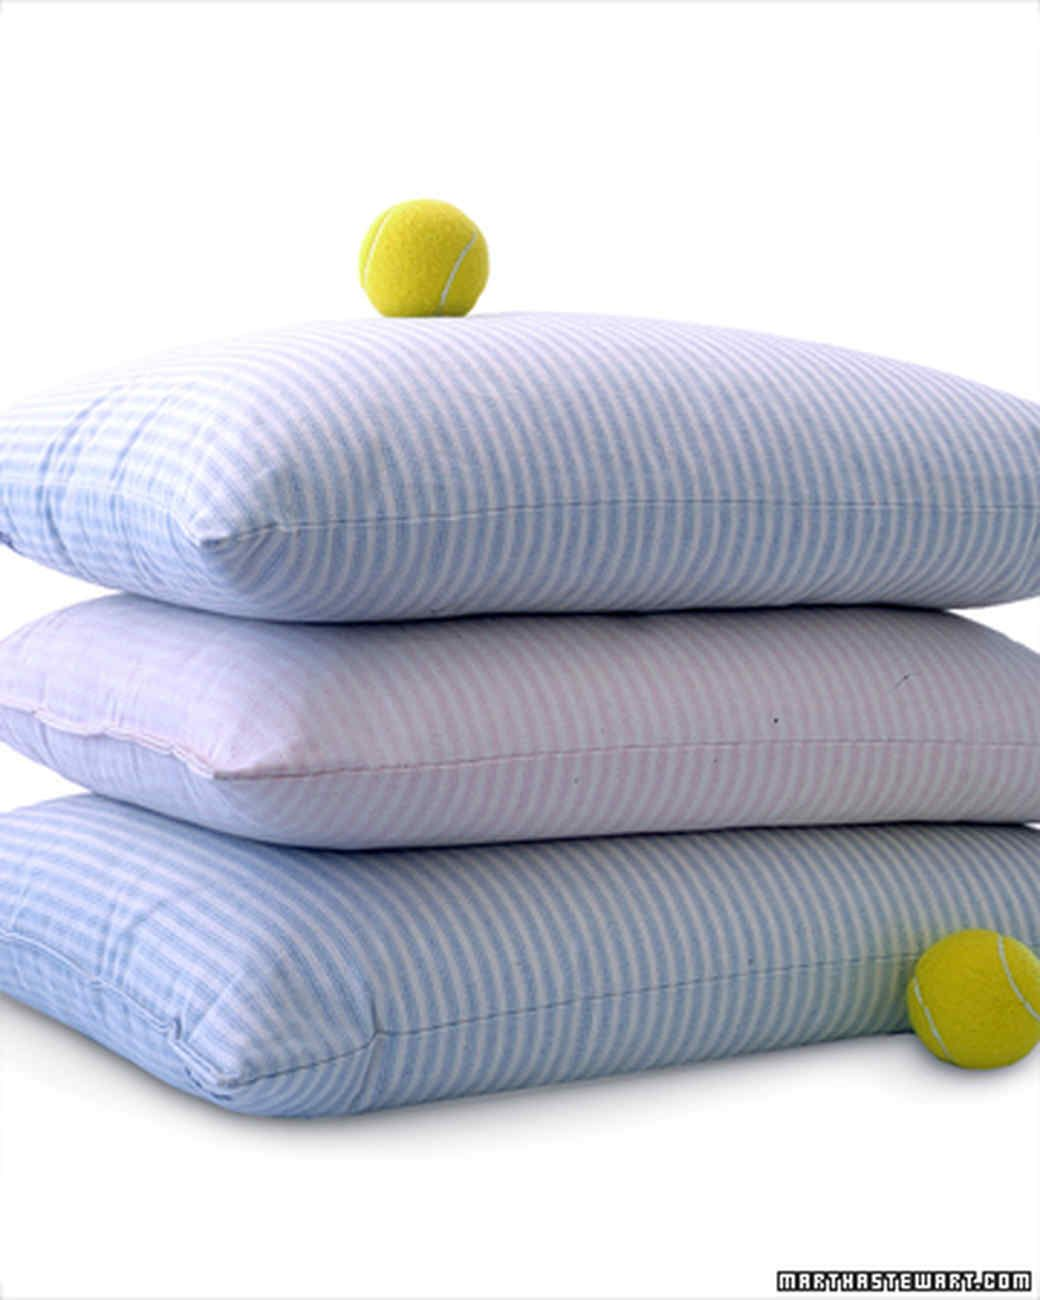 The Ultimate Guide To Washing Pillows, Blankets, And Down